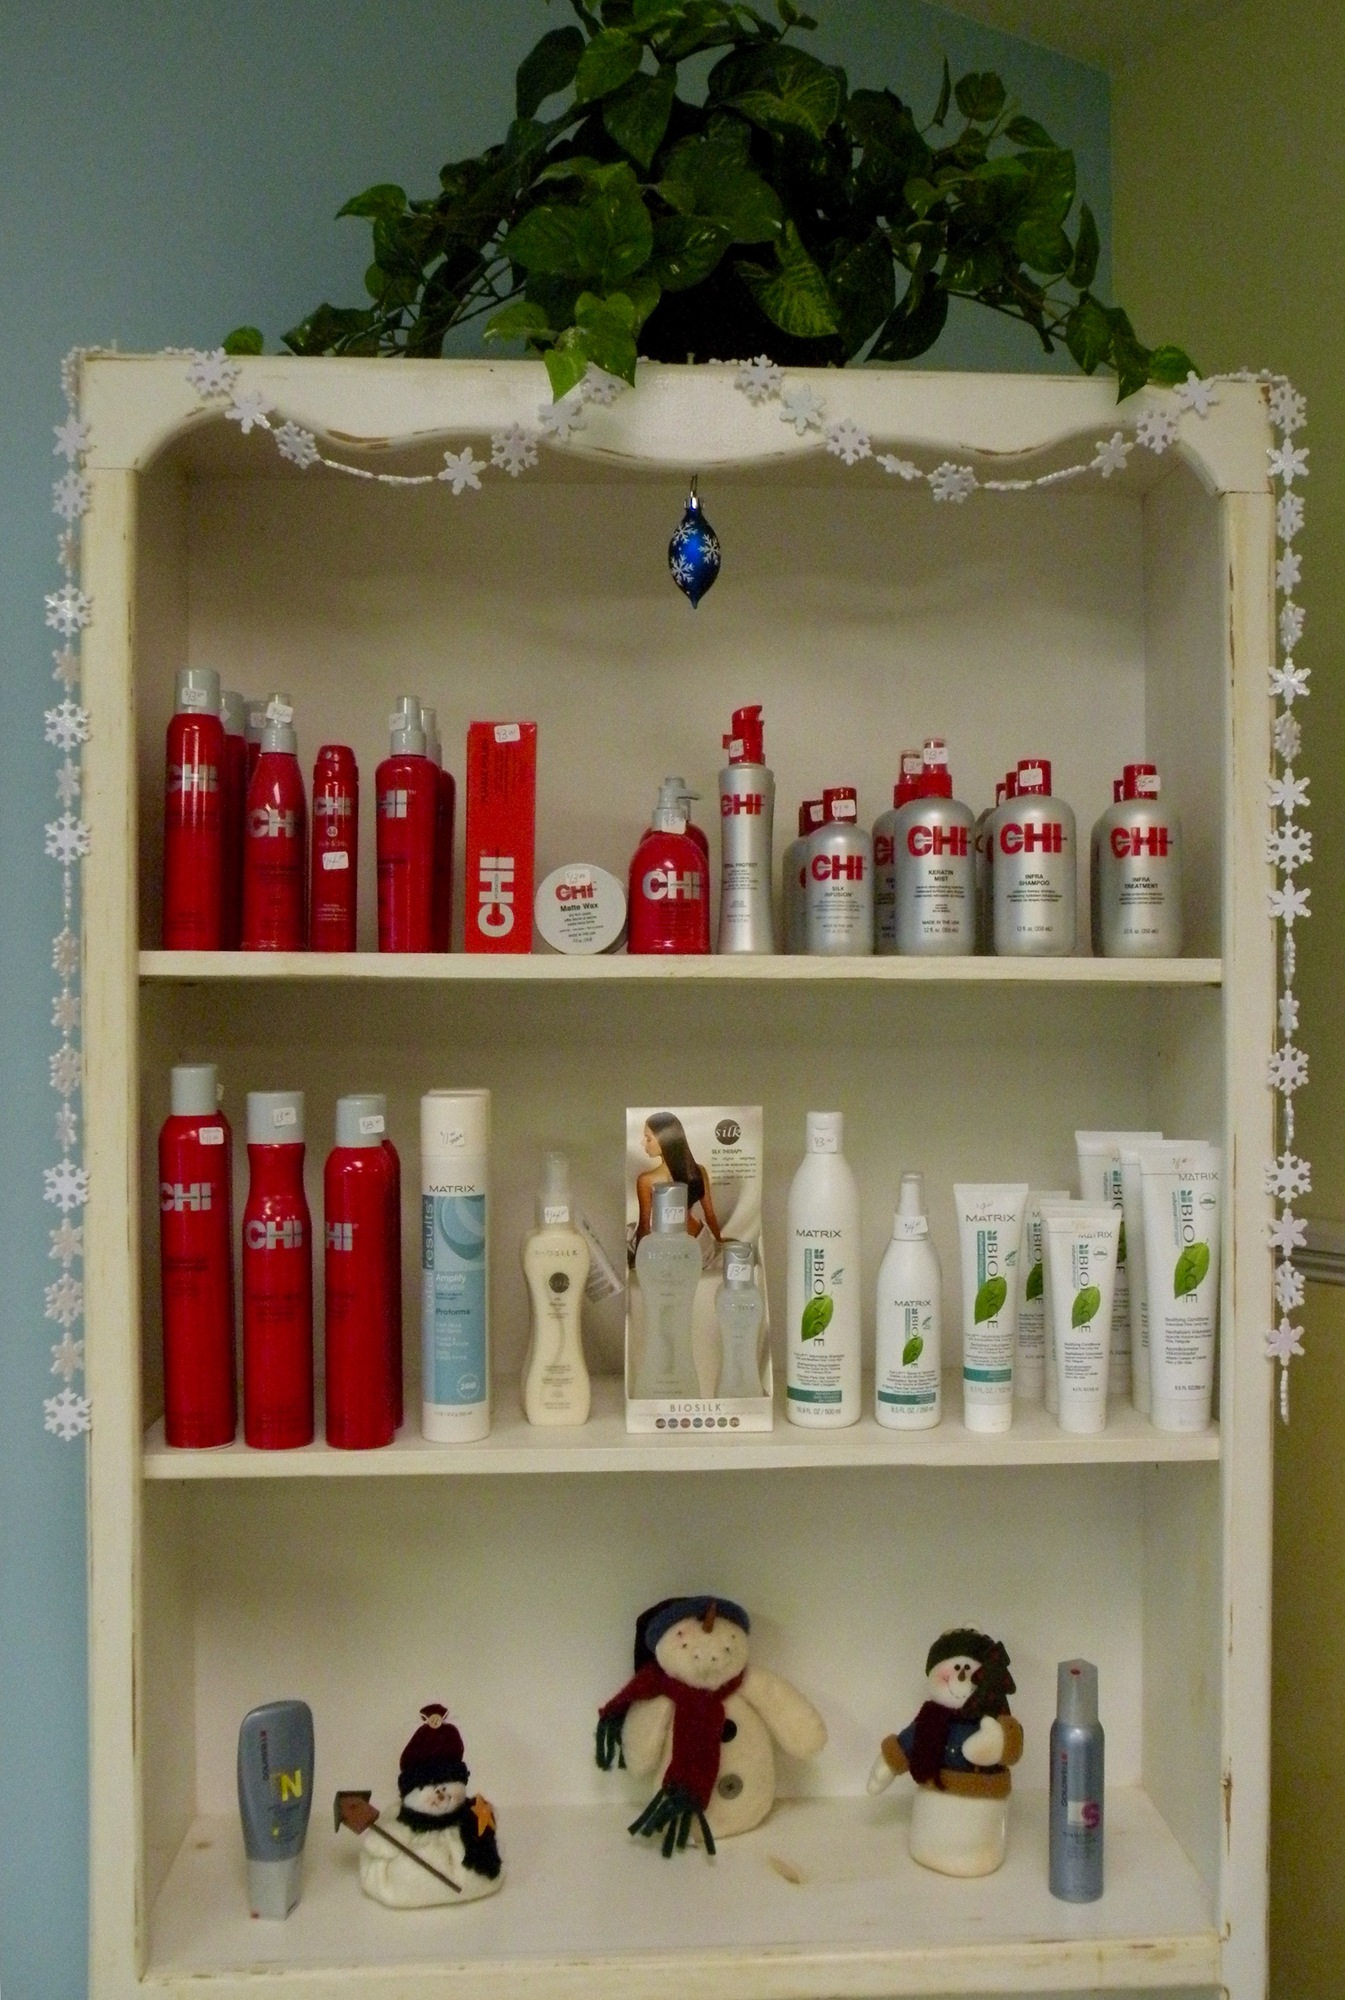 The Hair Studio stocks both Biolage and Chi hair products.